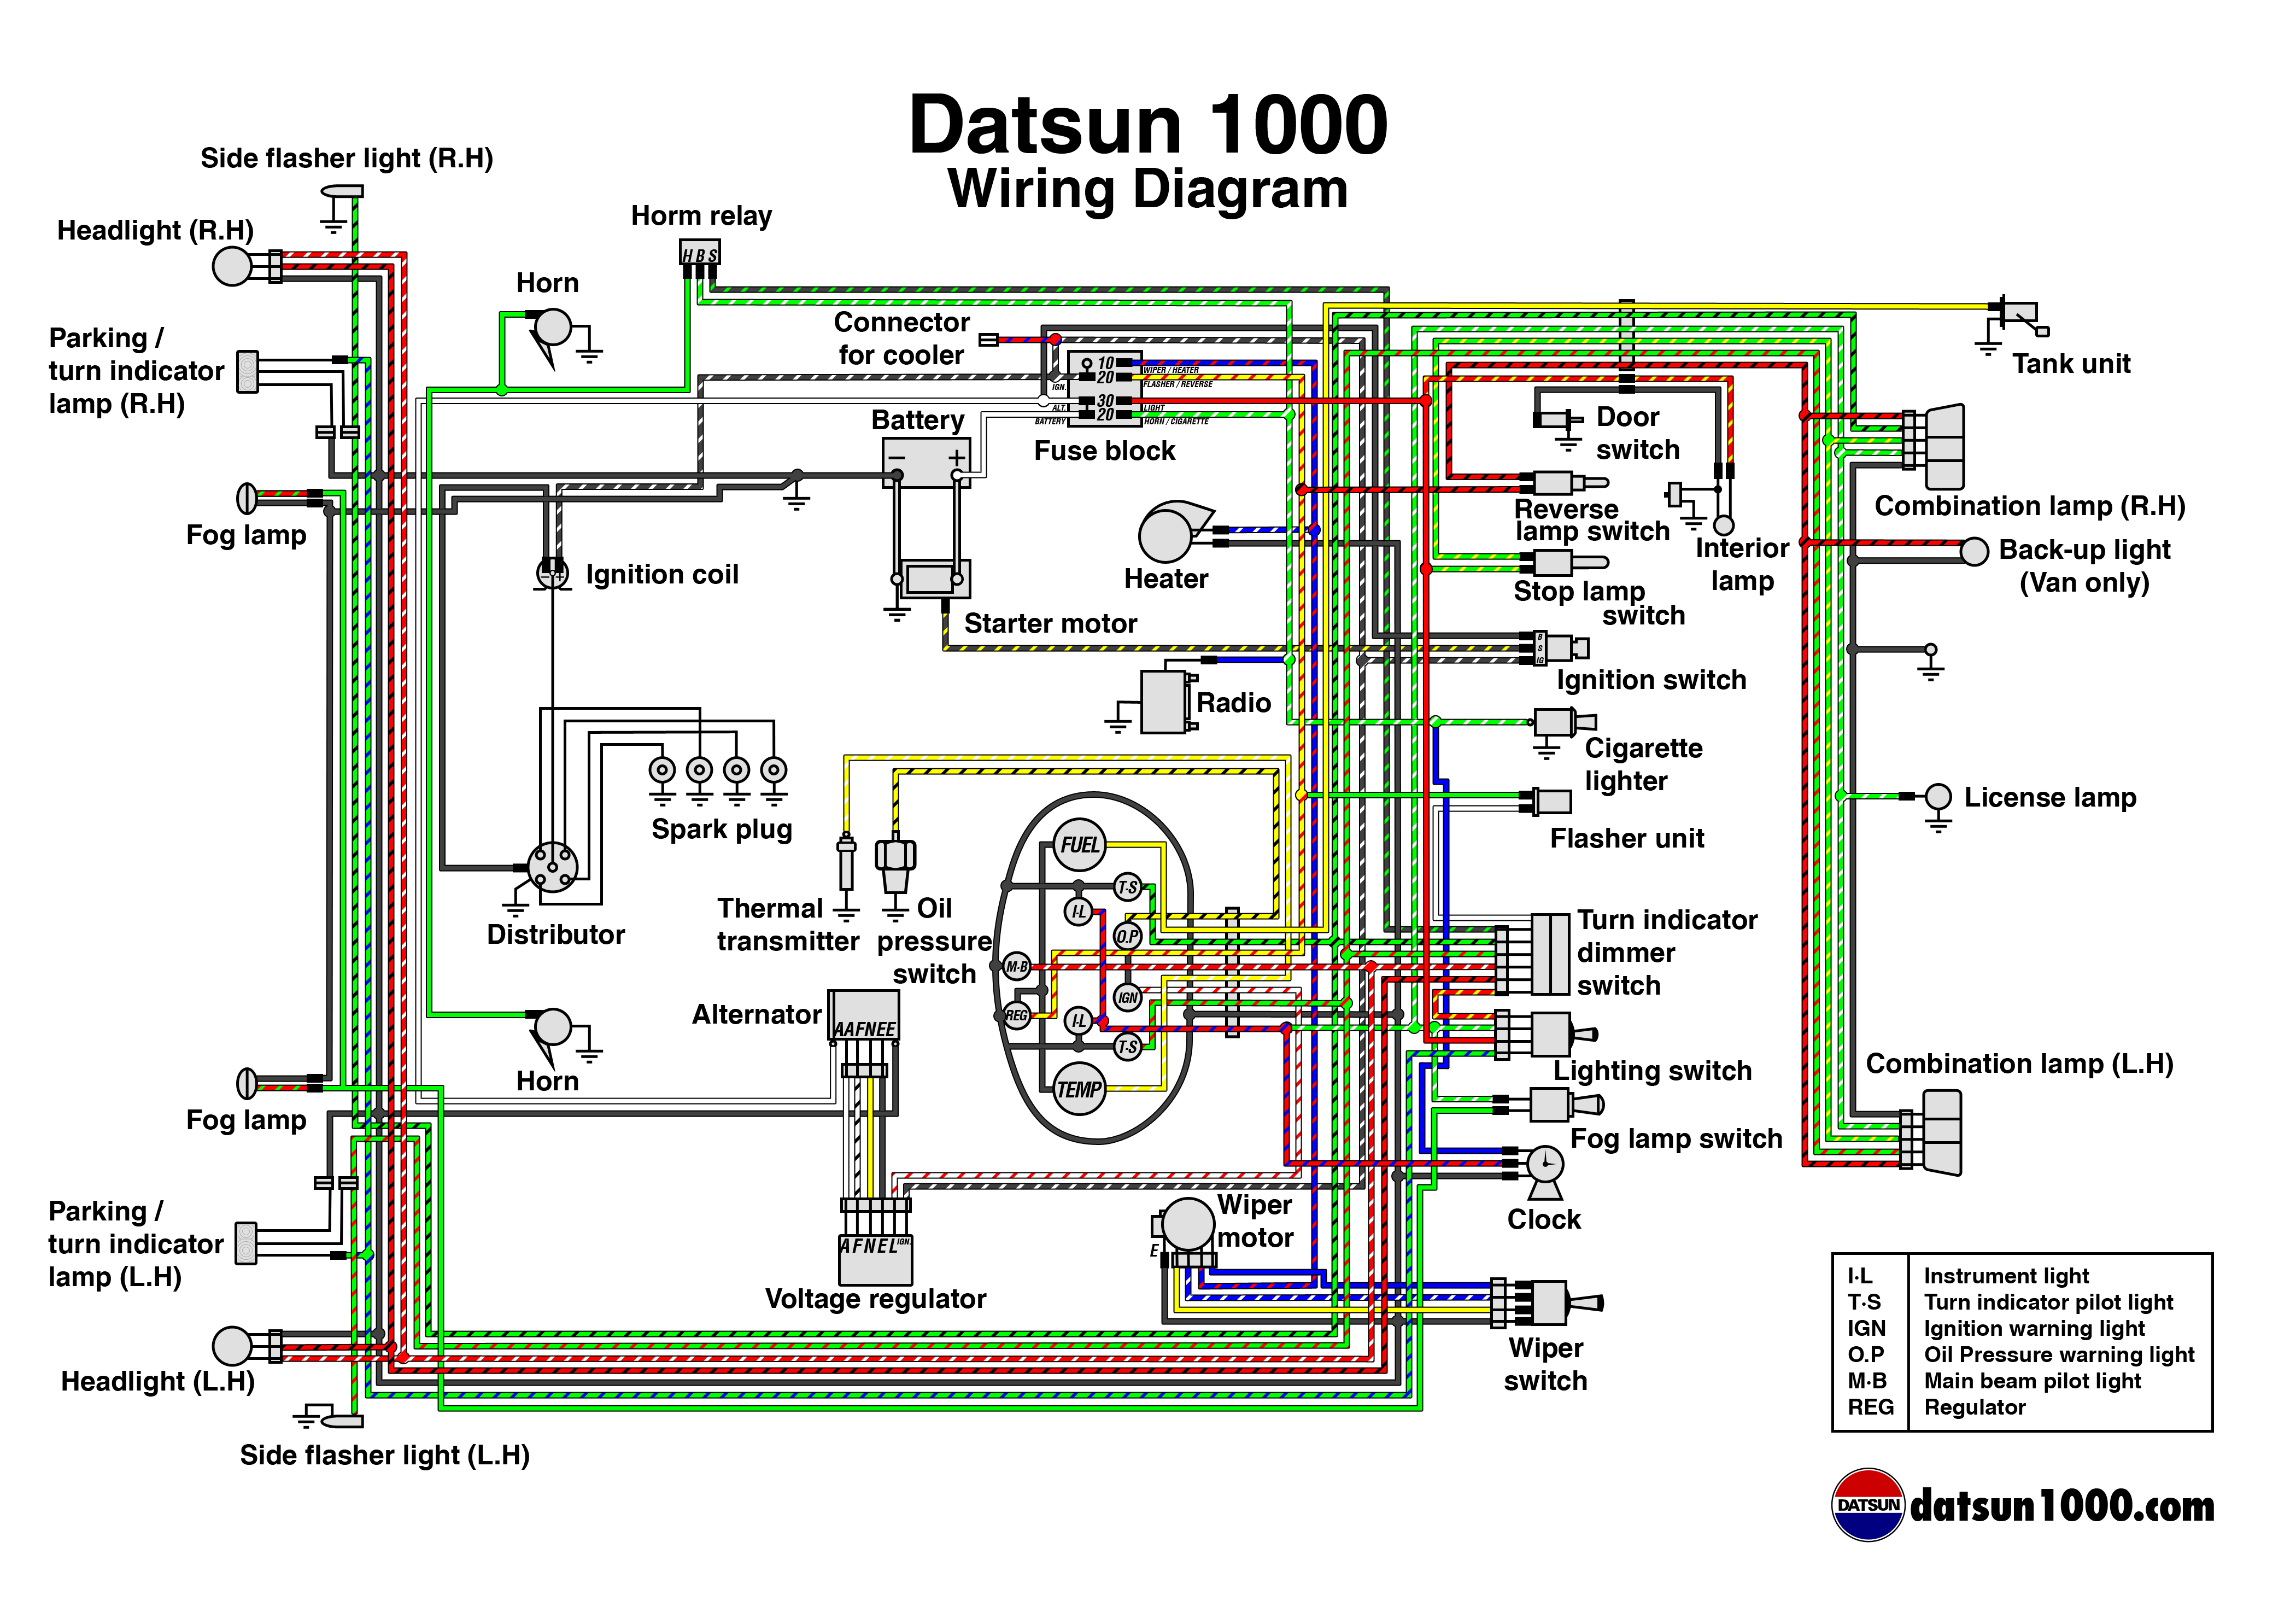 Diagram 1973 Datsun Wiring Diagram Full Version Hd Quality Wiring Diagram Pvdiagramxstach Edizionisavine It